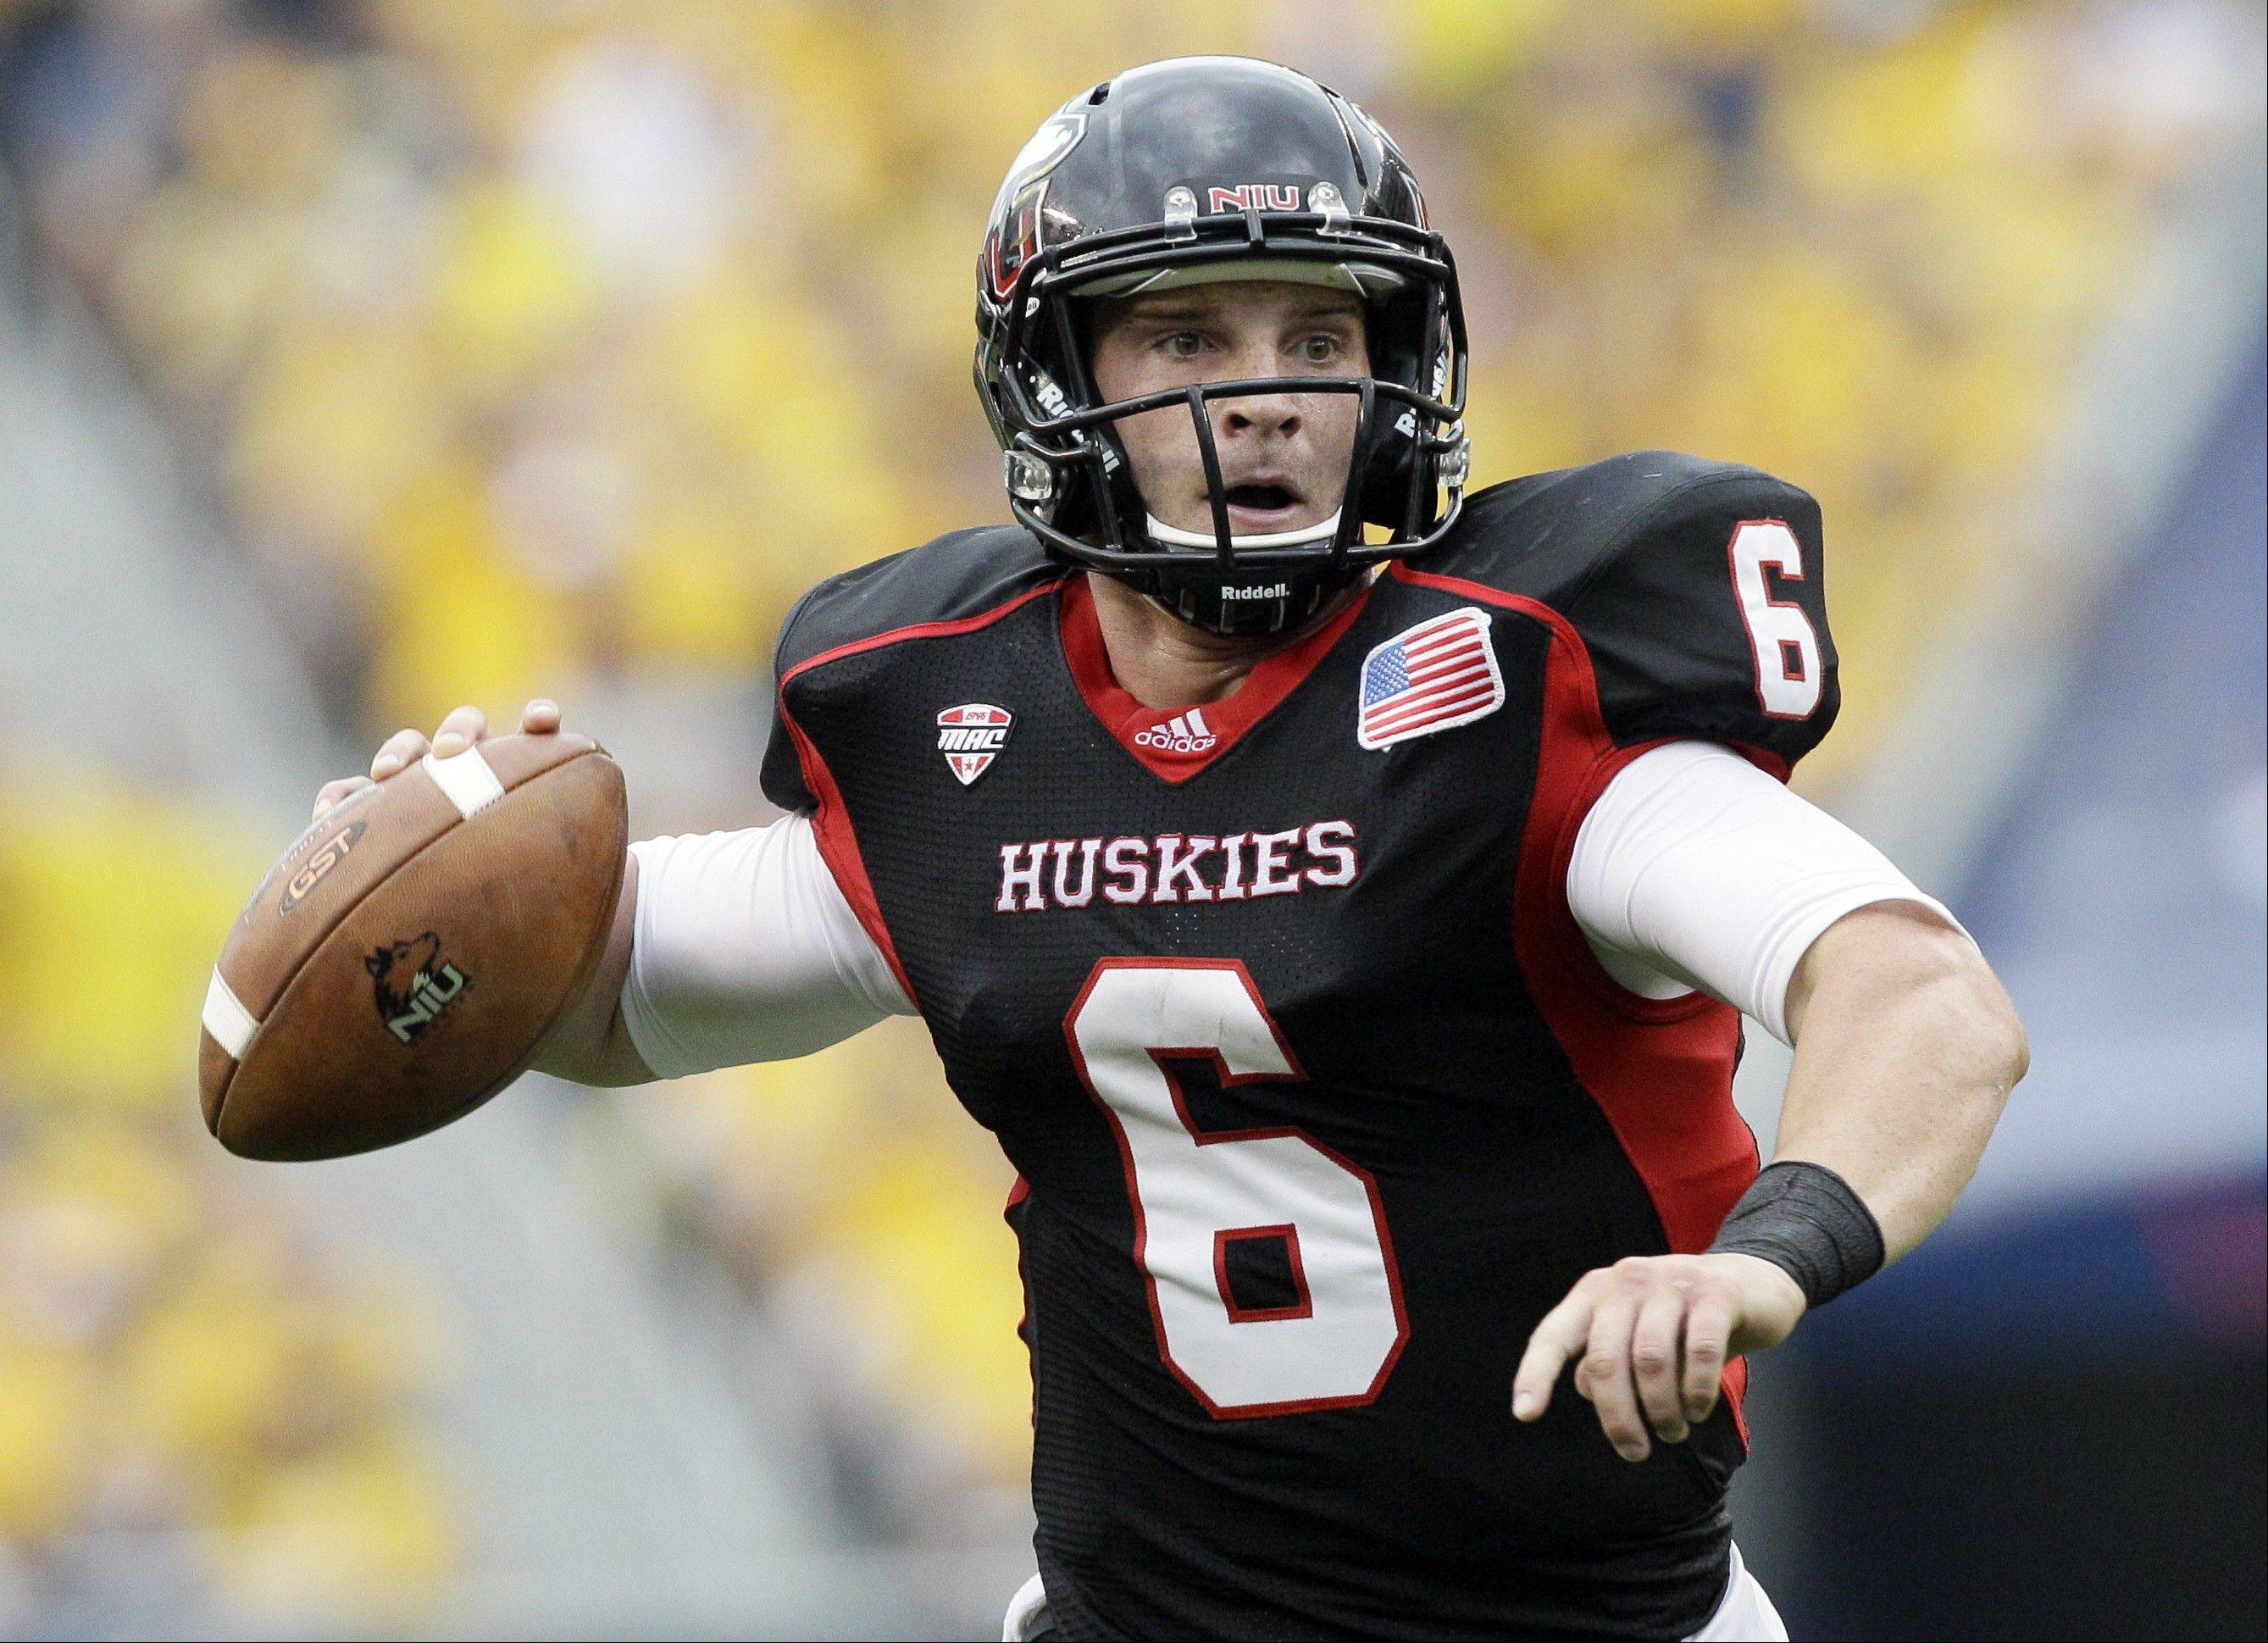 Northern Illinois quarterback Jordan Lynch and the Huskies will hit the road to play Army this weekend. NIU's next home game is Sept. 22 against Kansas.